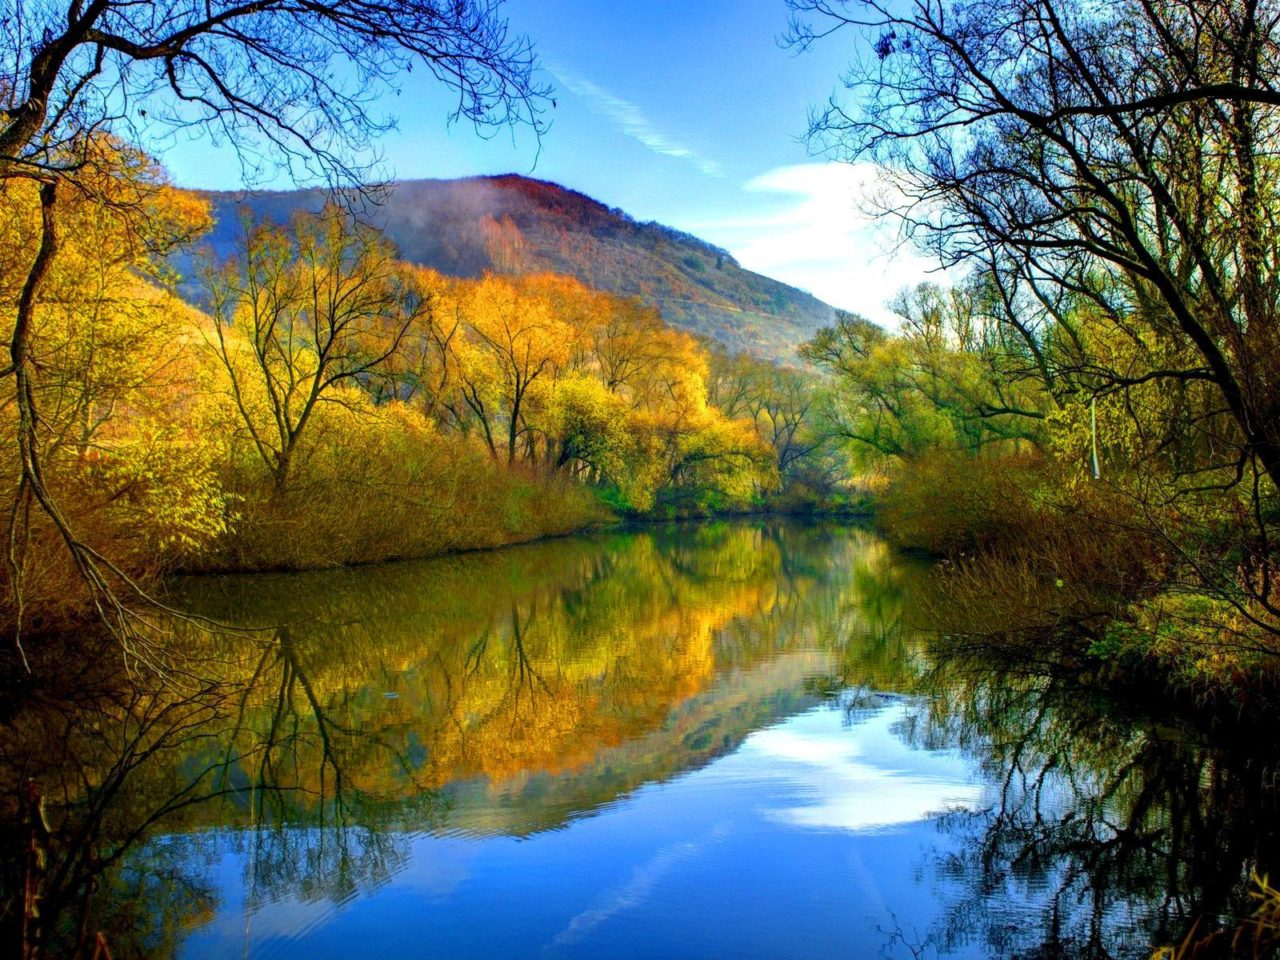 Fall Pc Wallpaper Free Fall River Peaceful Water Willow With Yellow Leaves Blue